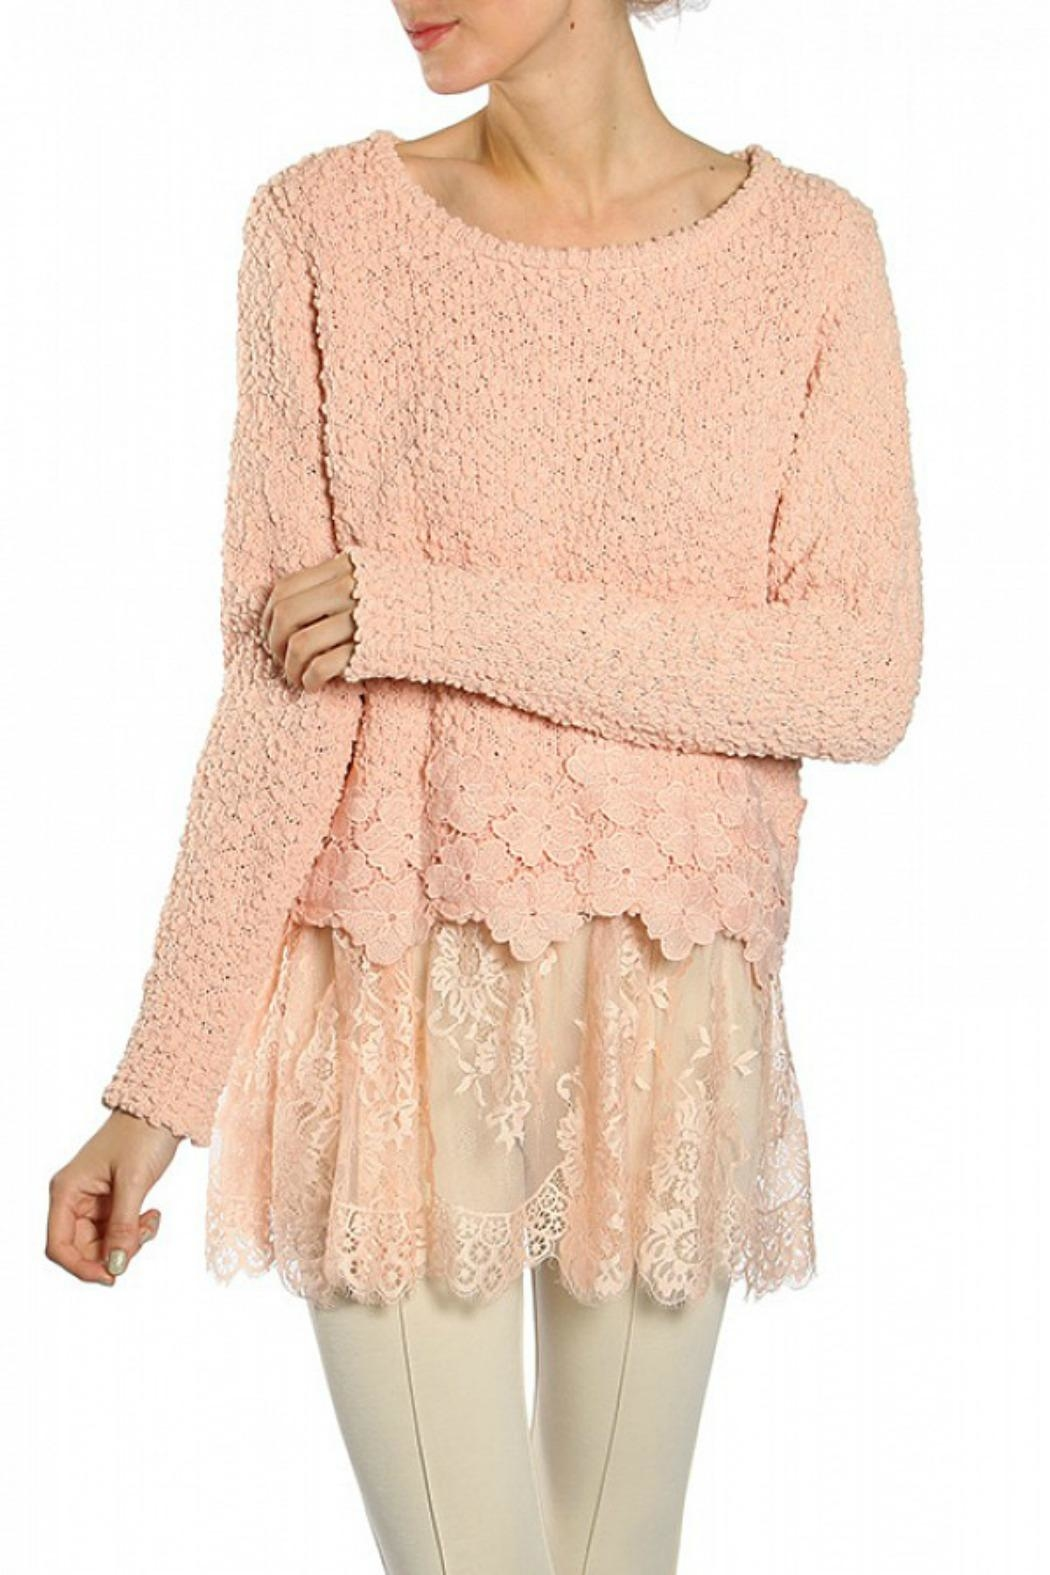 Ryu Peach Lace Sweater - Main Image